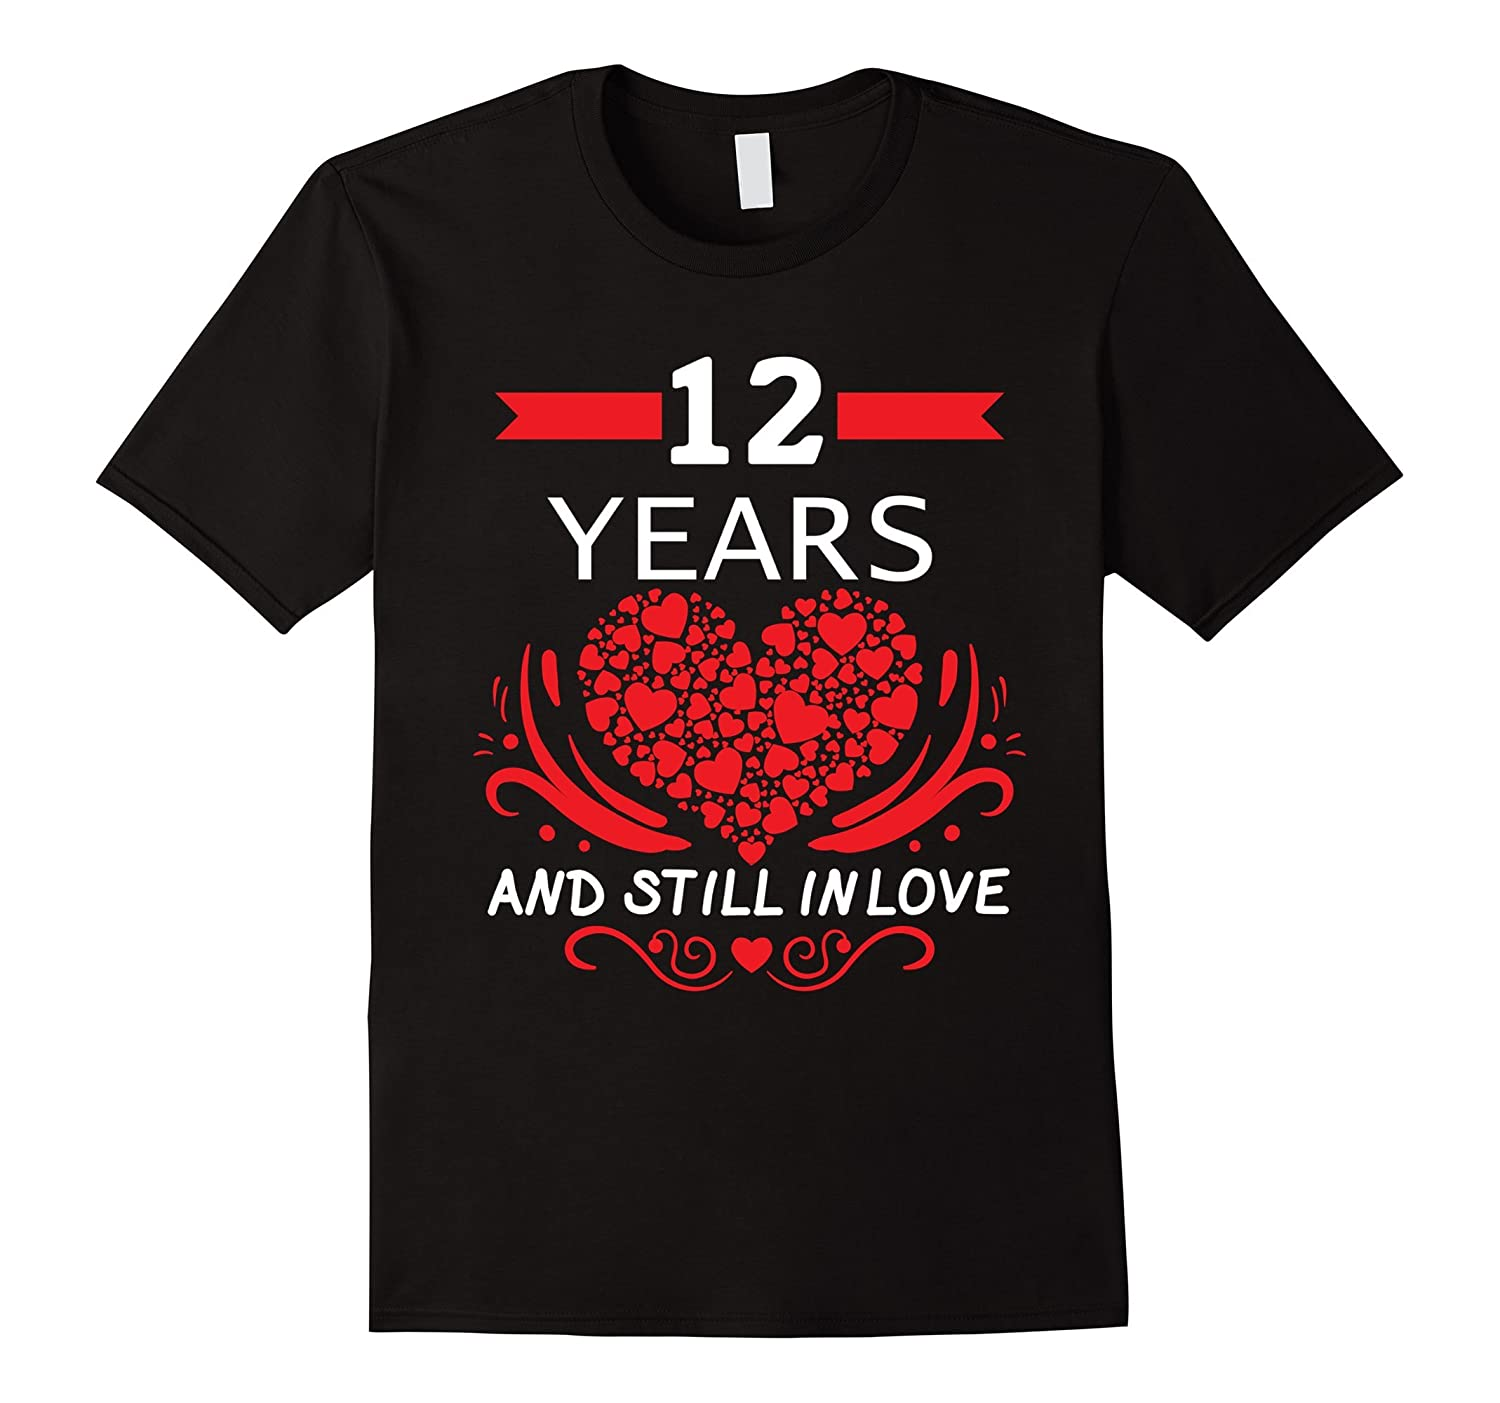 12 Year Wedding Anniversary Gifts: 12th Wedding Anniversary Gifts 12 Year Shirt For Him And